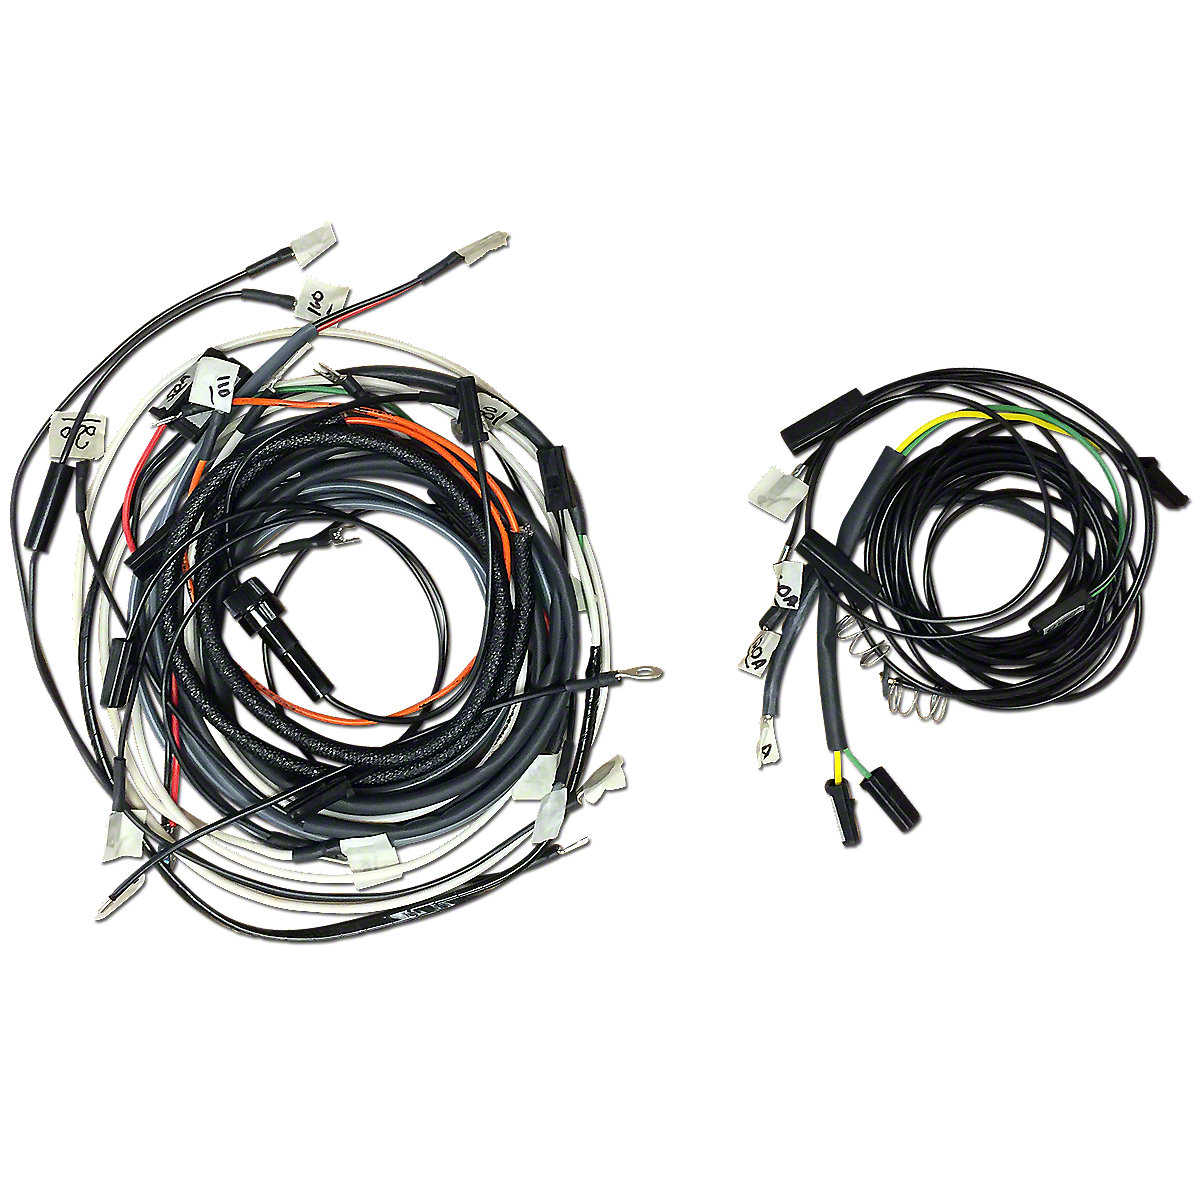 Wiring Harness Kit JDS2899